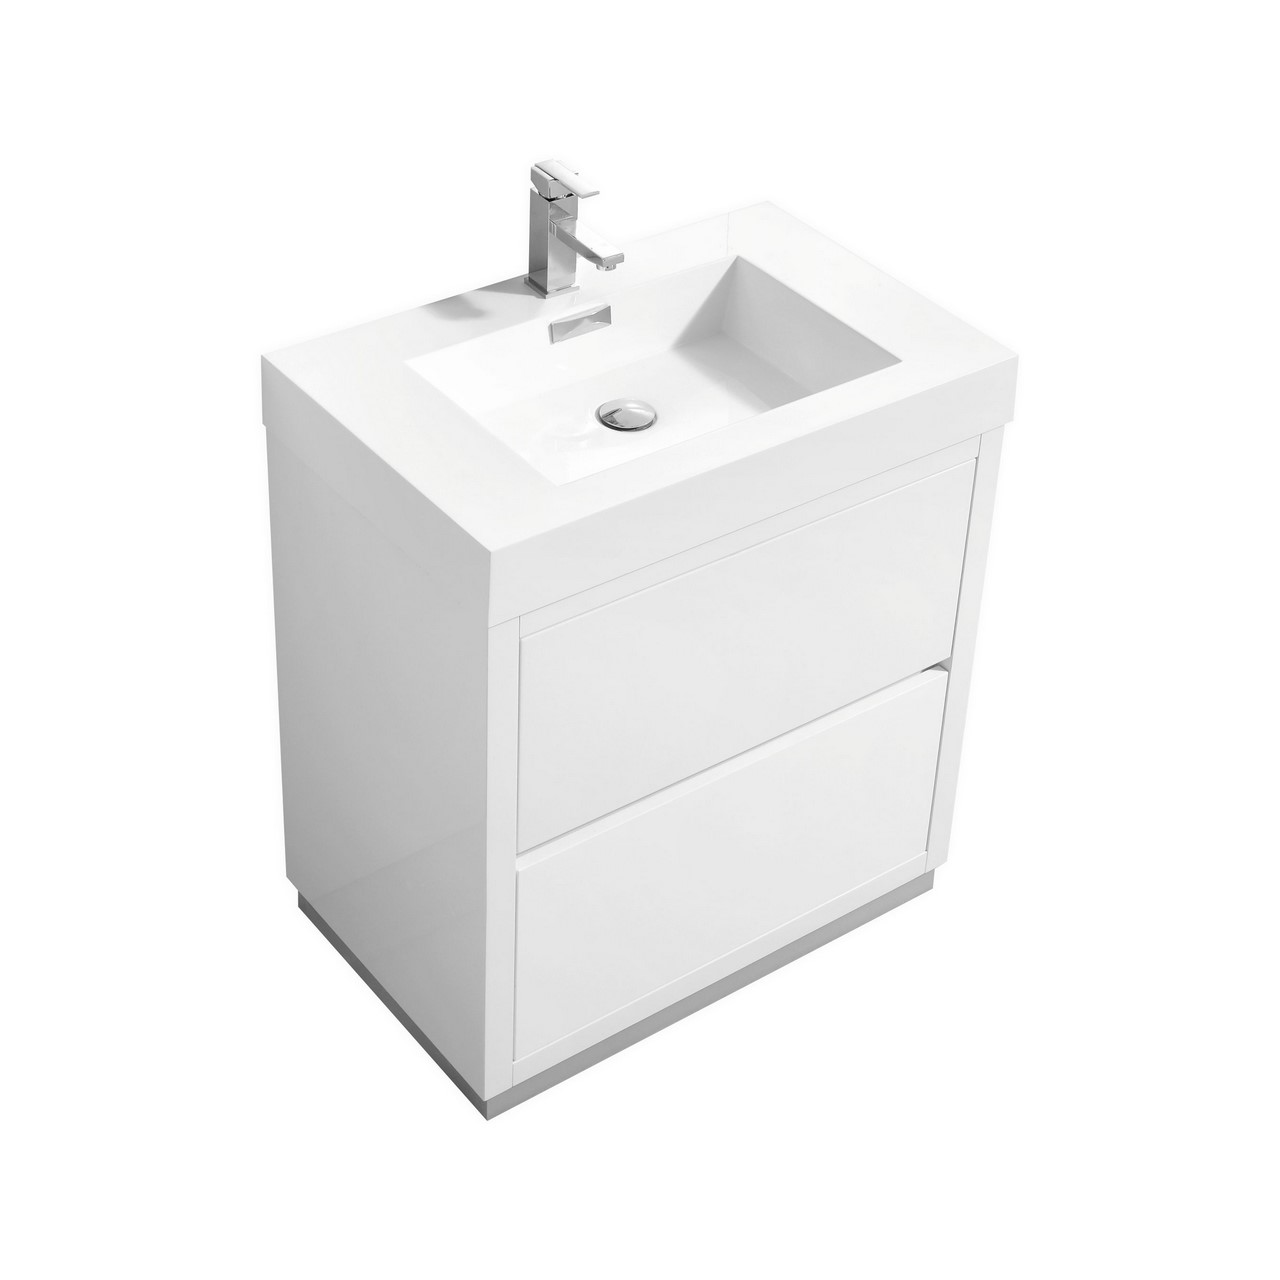 Bliss 30 high gloss white free standing modern bathroom for Modern white bathroom vanity